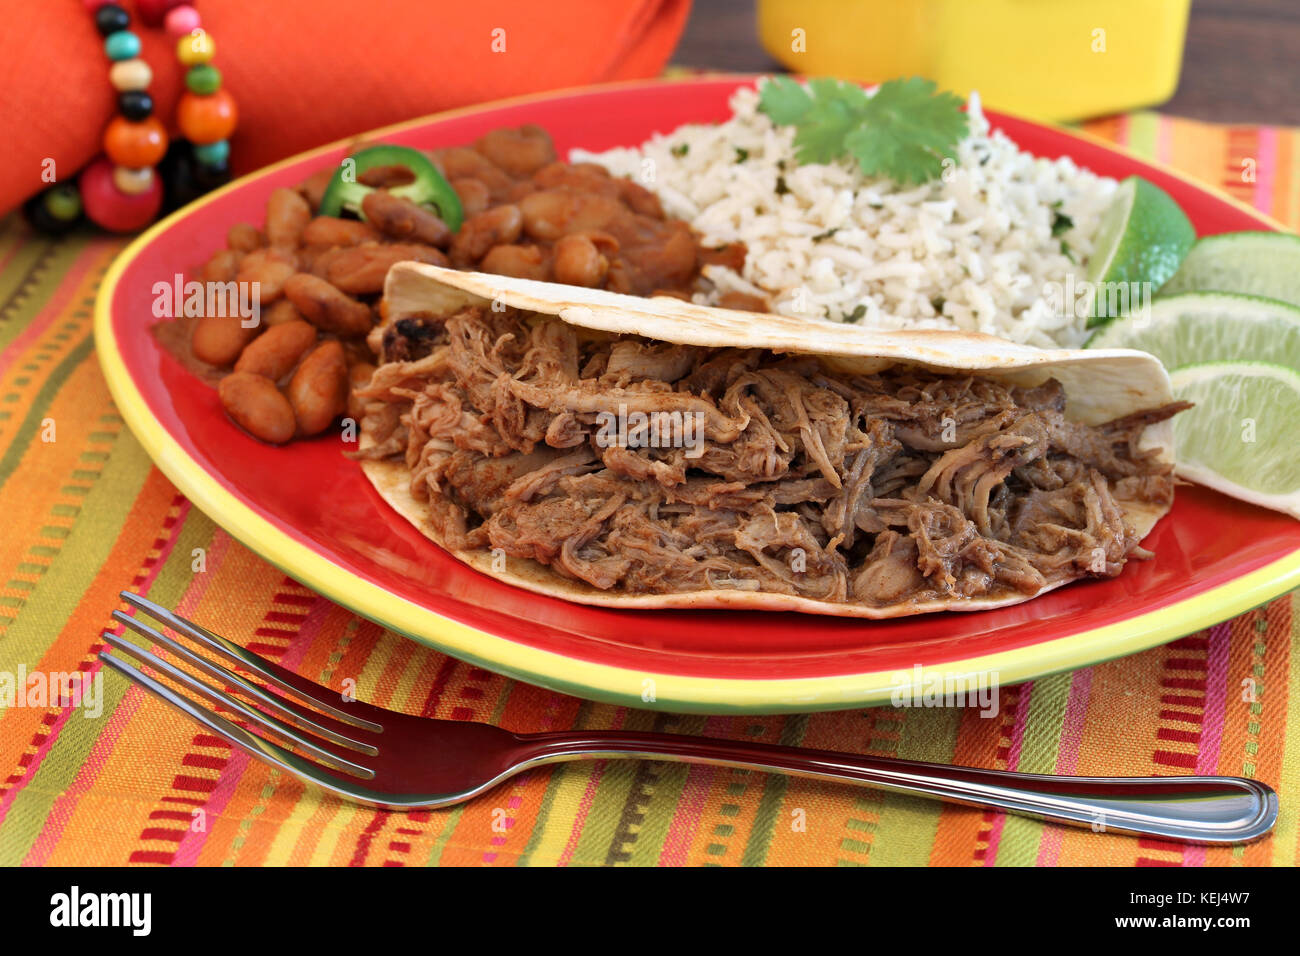 Pulled pork taco with a side of chili beans, basmati rice, and lime slices.  Selective focus on meat. - Stock Image